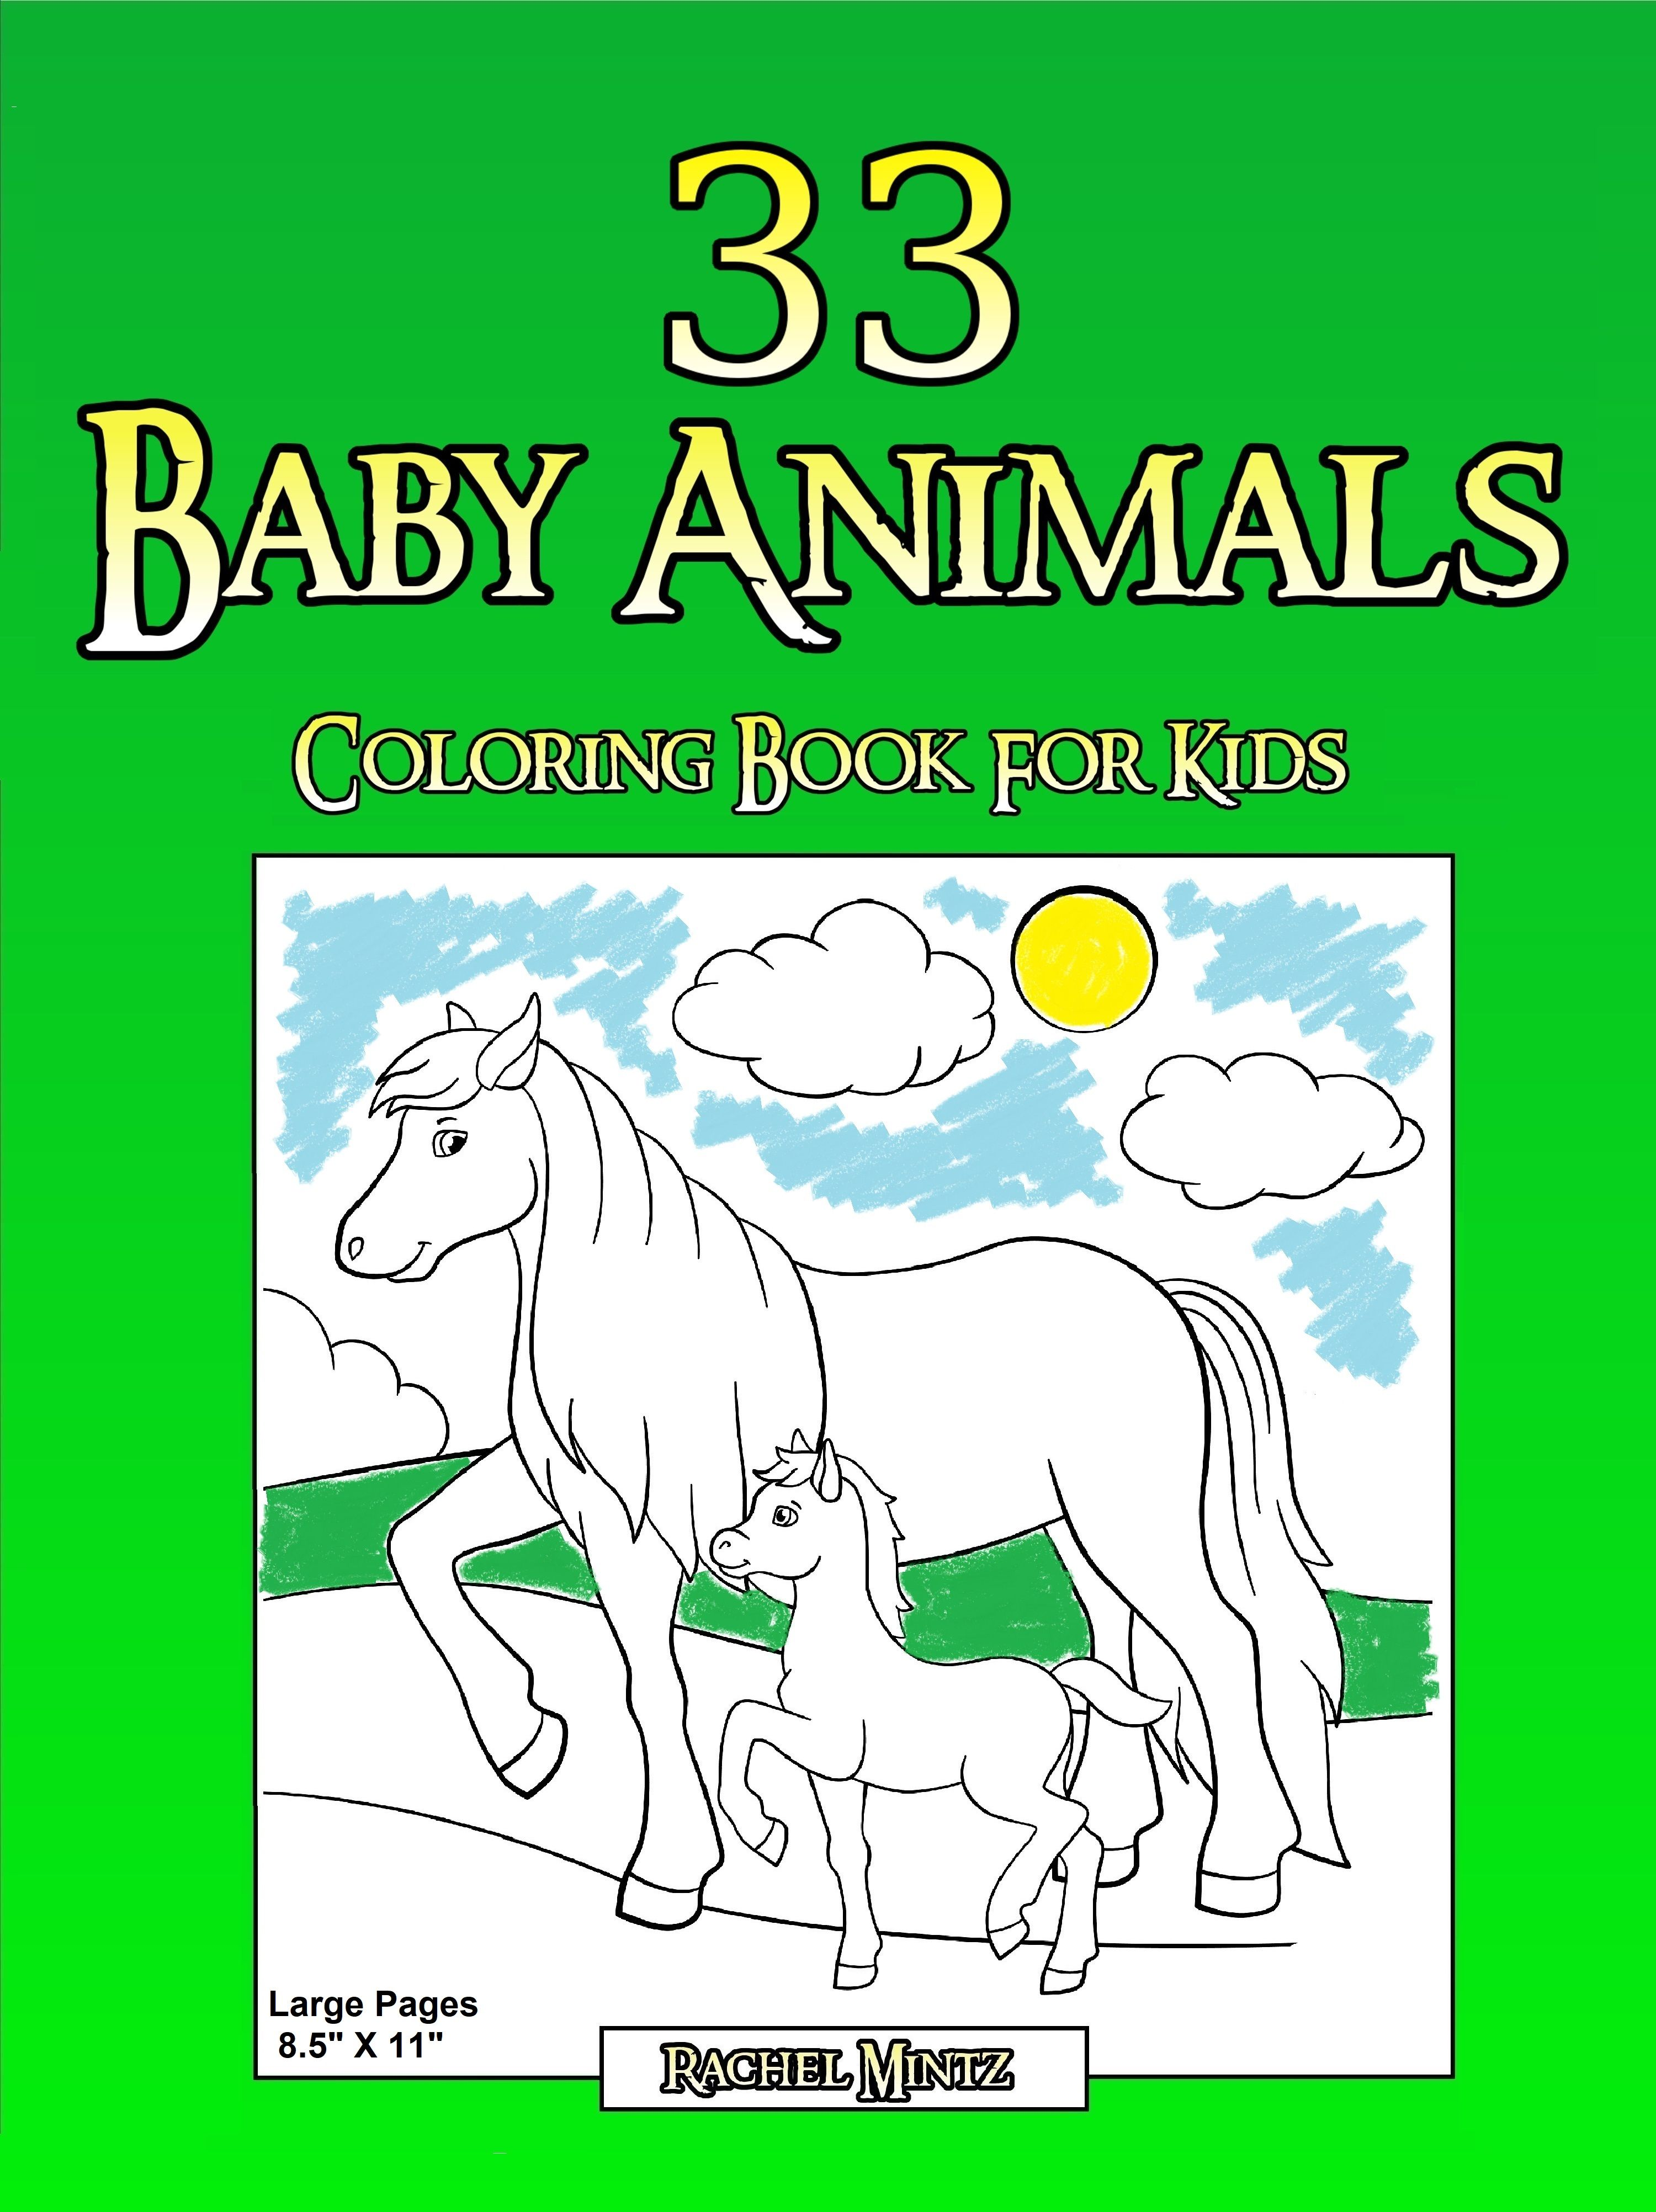 Packed with 33 Coloring Pages For Kids! Large coloring drawings of ...